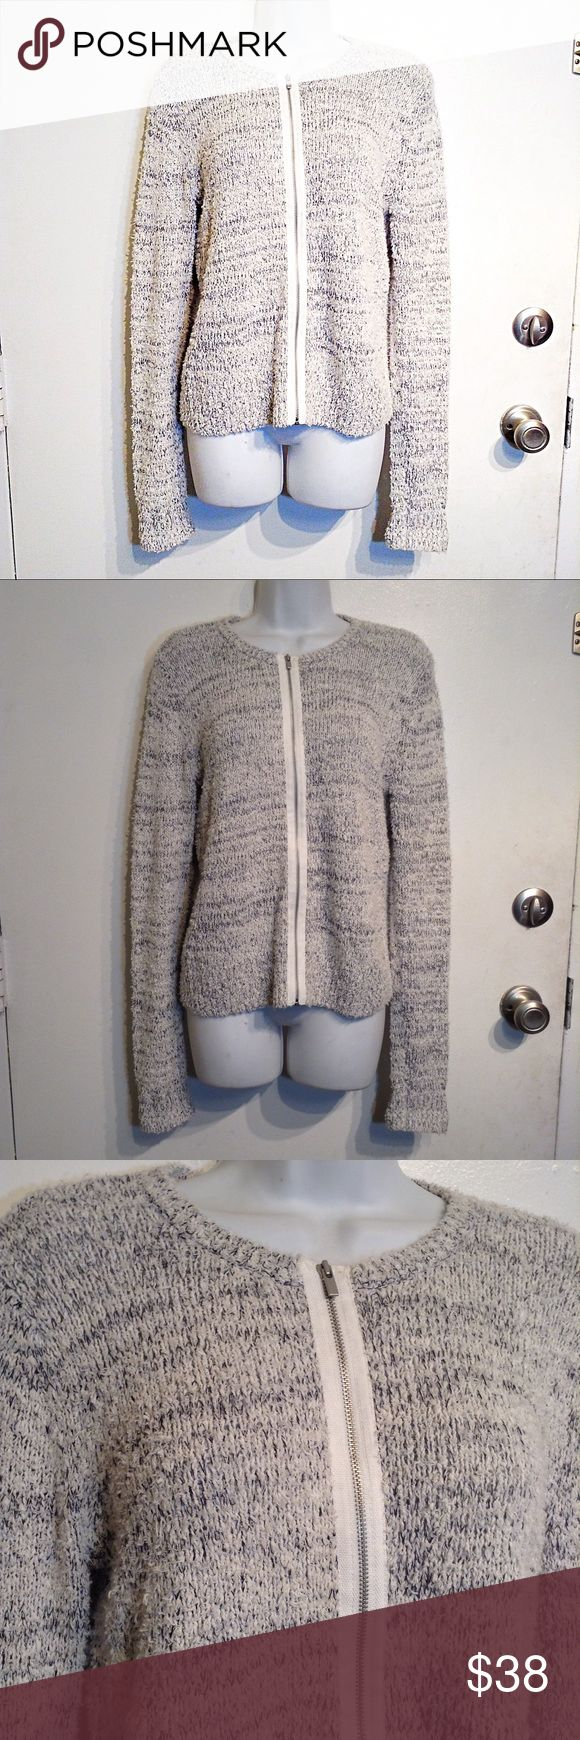 """LOFT Space Dye Marled Knit Zip Up Sweater Jacket Ann Taylor LOFT grey and white space dyed marled knit zip up sweater jacket. Warm and cozy. Neutral and chic. Perfect for layering at the office. Size medium. Has stretch, Measures 20"""" flat from armpit to armpit and 25.5"""" long. No modeling. Smoke free home. I do discount bundles. LOFT Sweaters"""